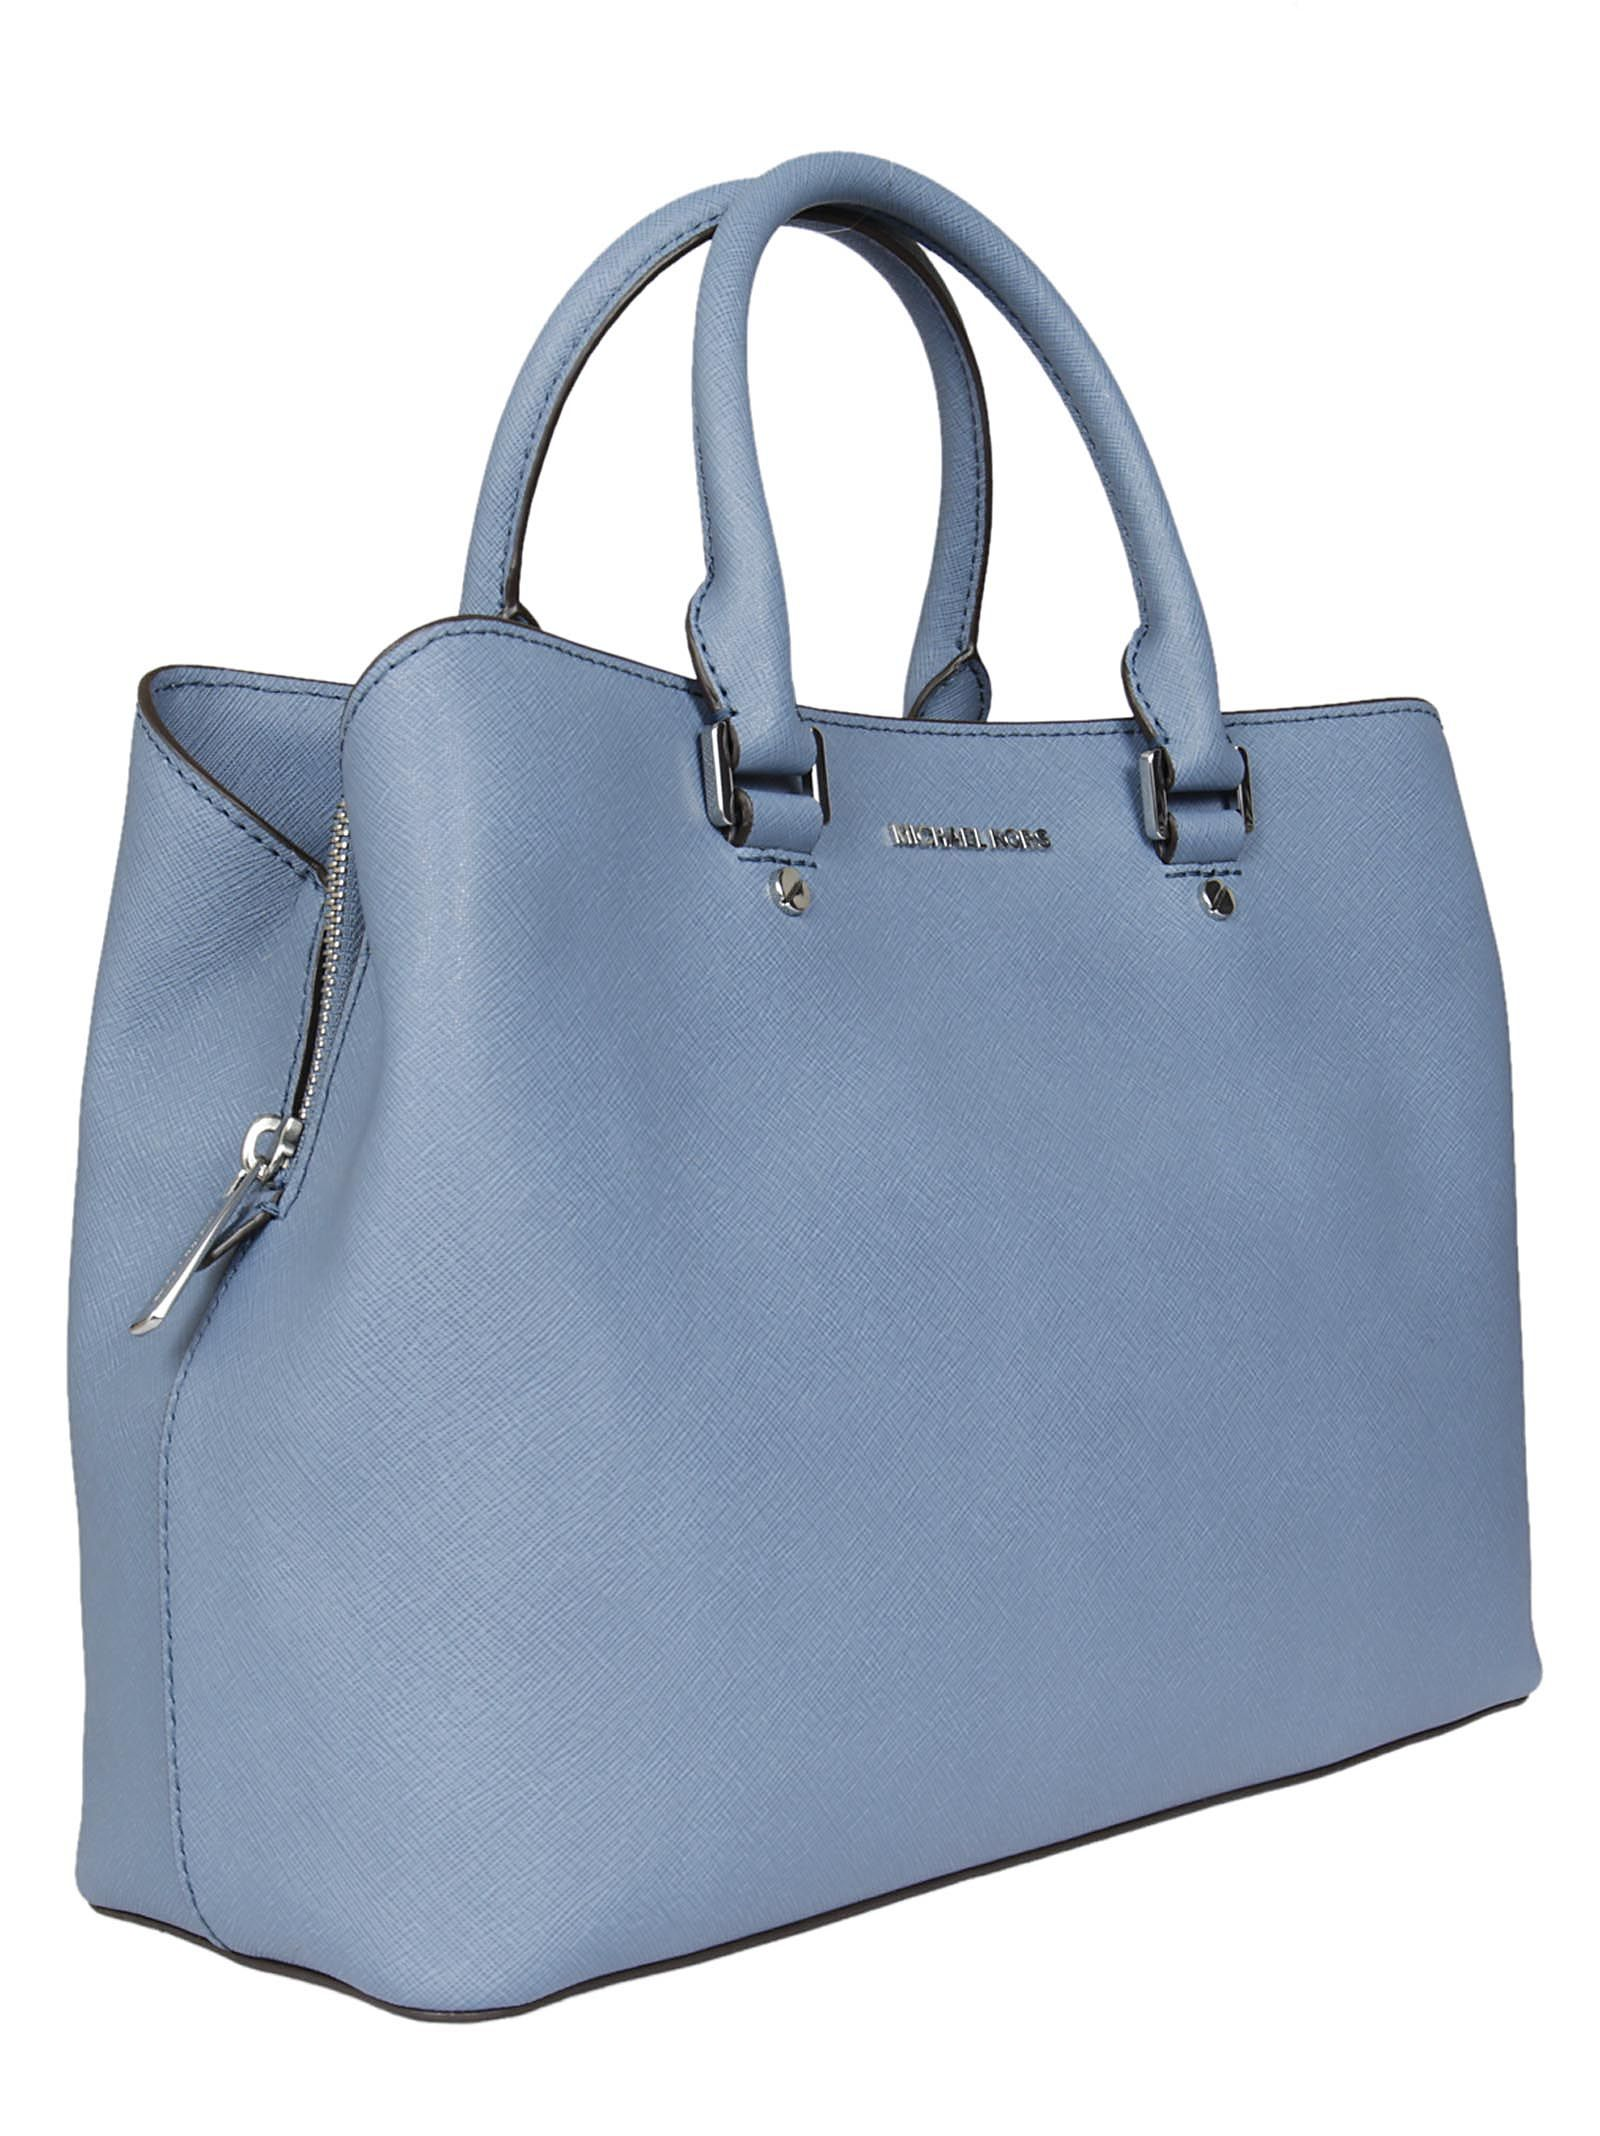 Michael Kors Savannah Tote